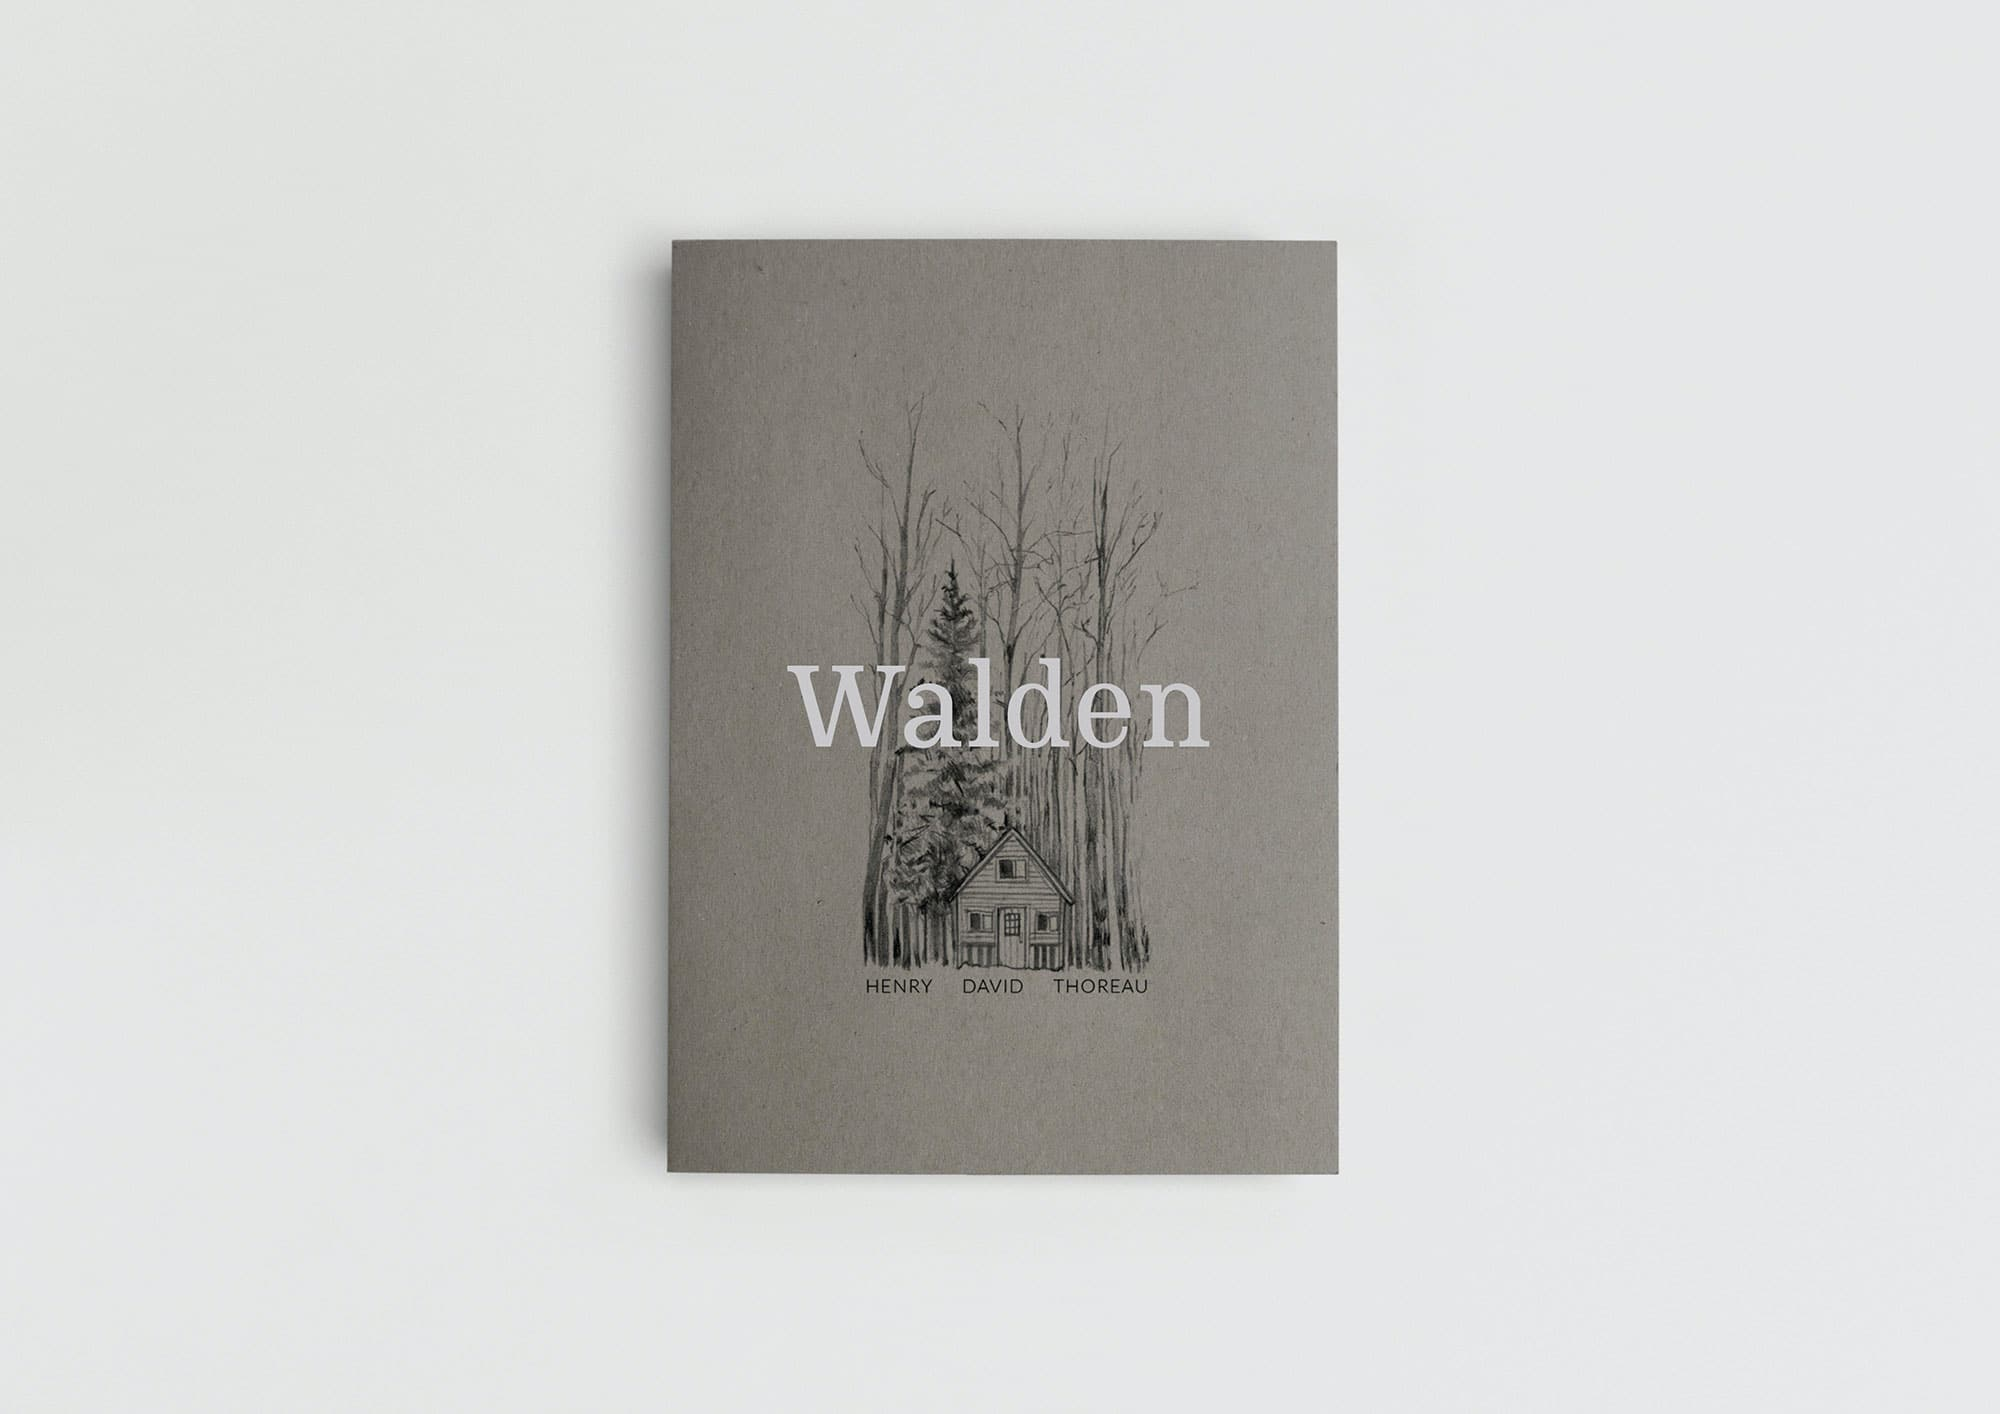 Walden book cover with Thoreau type